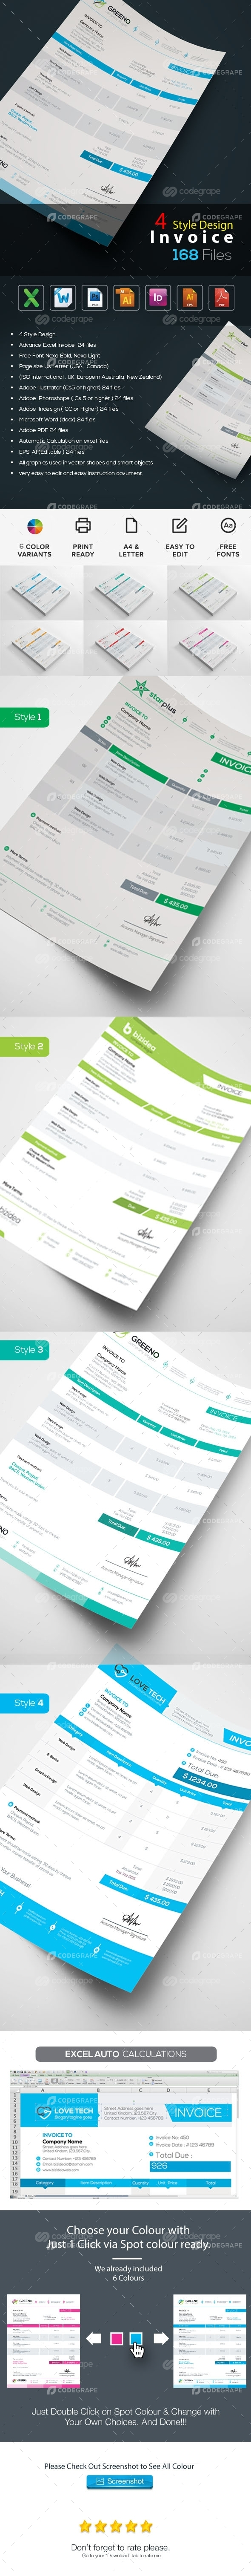 4 Style Design Corporate Invoice Pack